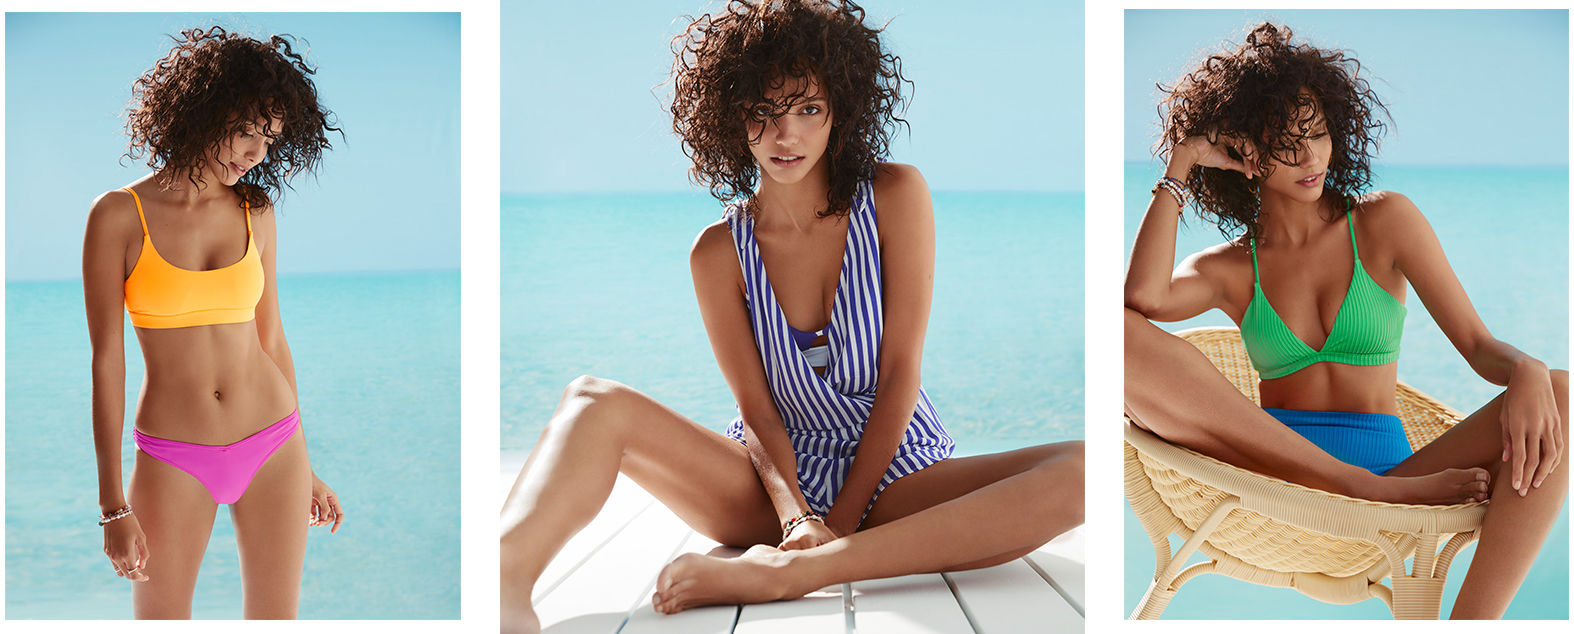 2019 Swimsuits: In Tune with the Trends